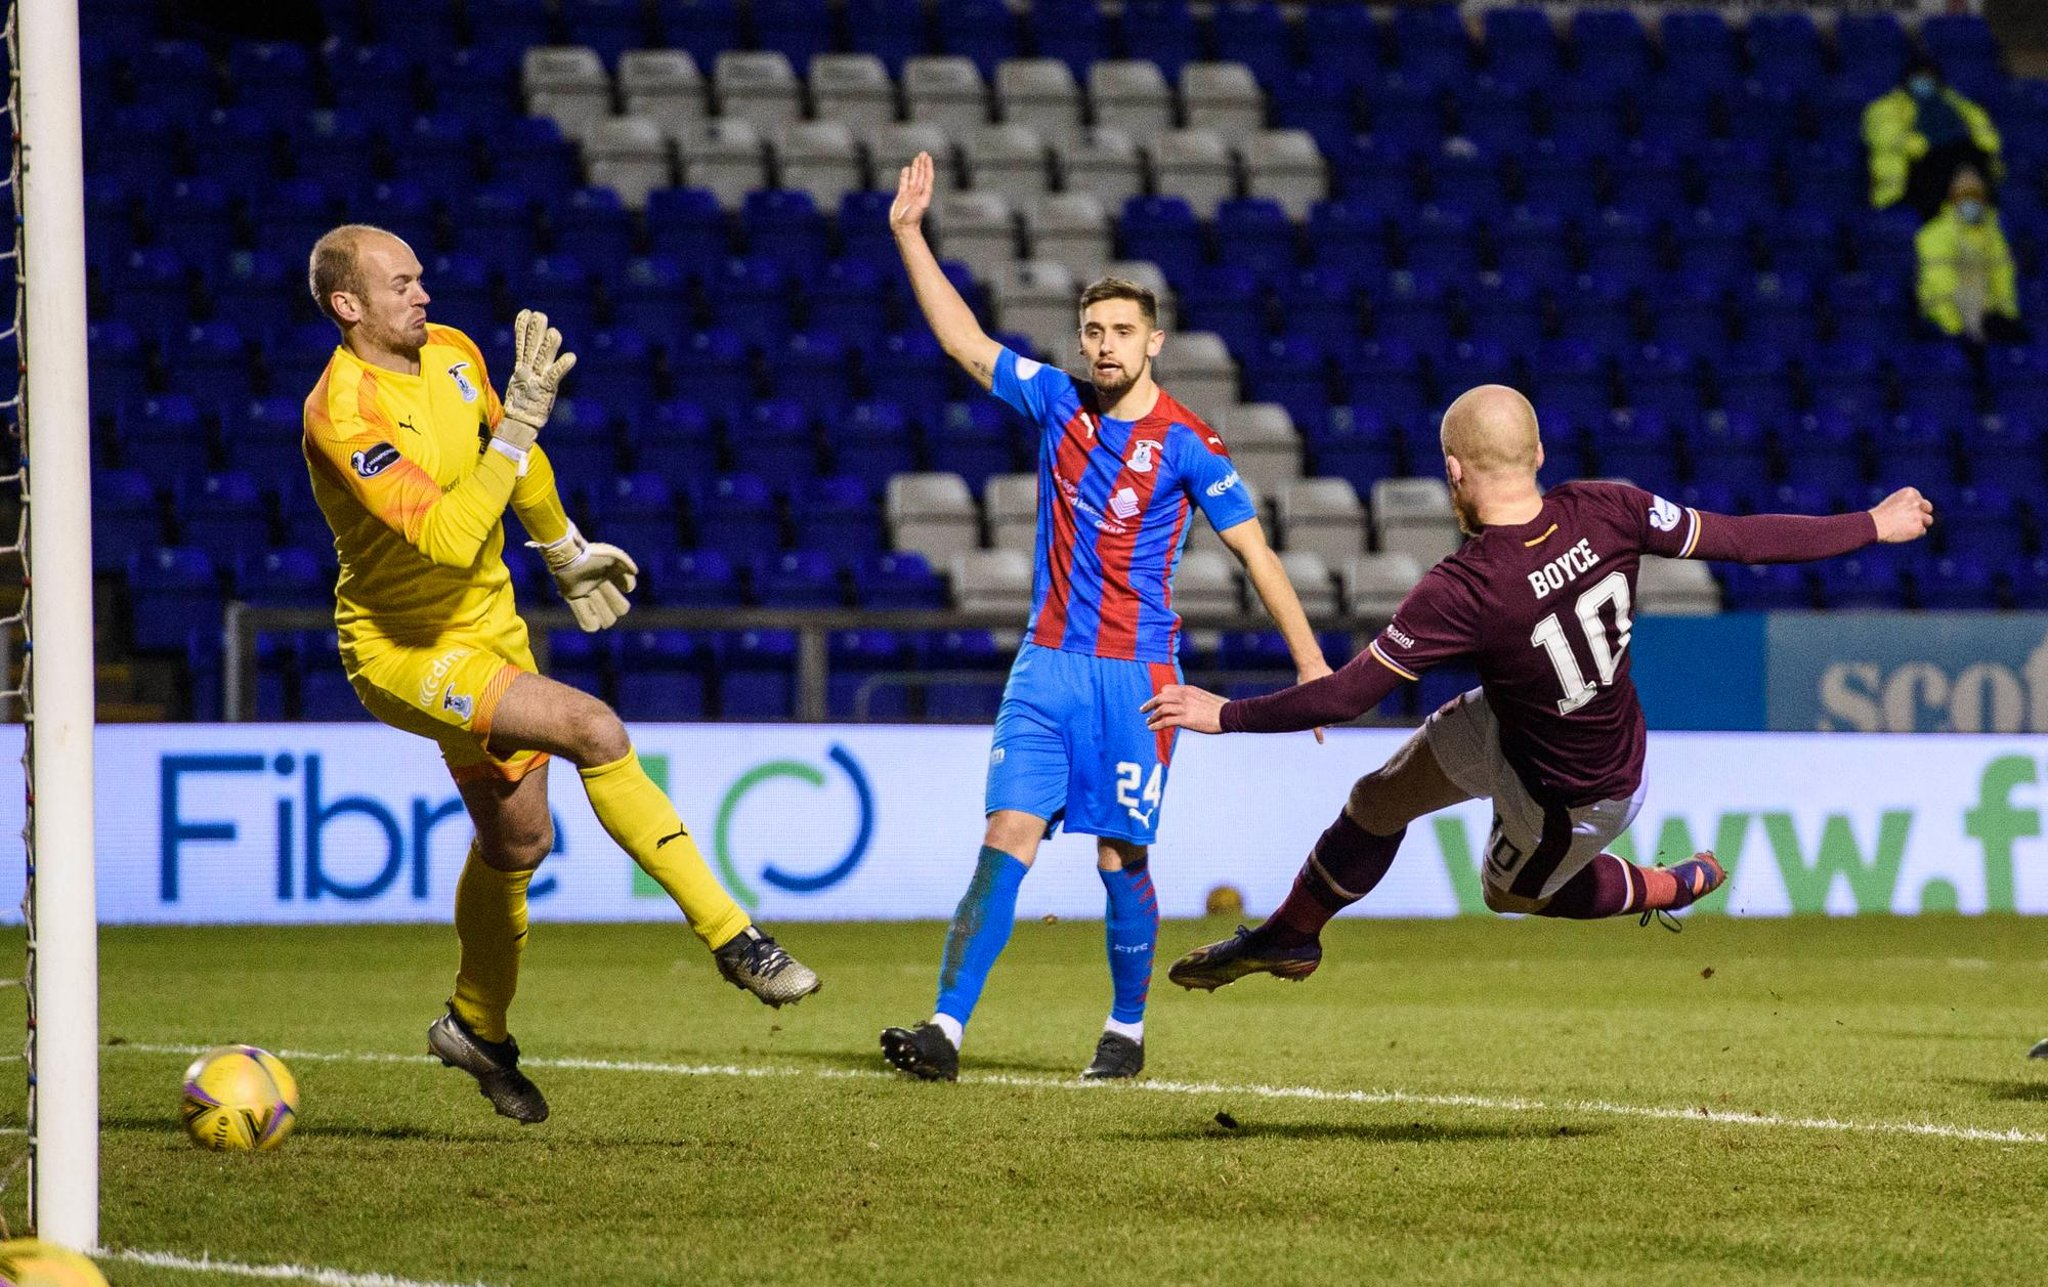 Inverness CT 1 - 1 Hearts LIVE: Boyce equalises for the league leaders